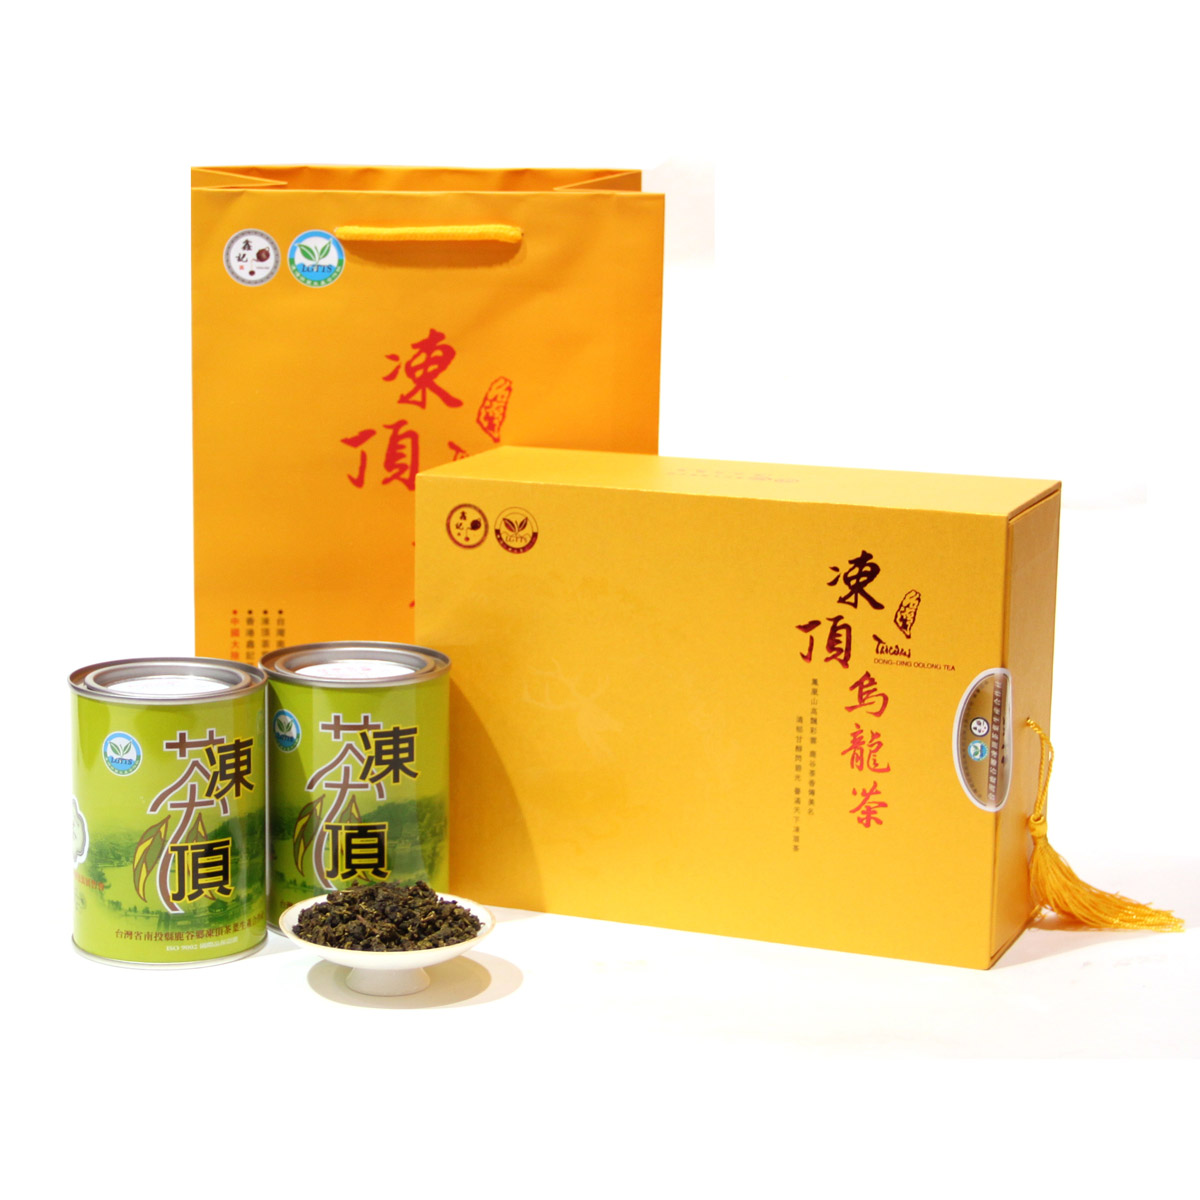 Xin Kee Dongding Oolong Tea Taiwan Tea Premium Fragrant Oolong Golden Gift Box 100gX2